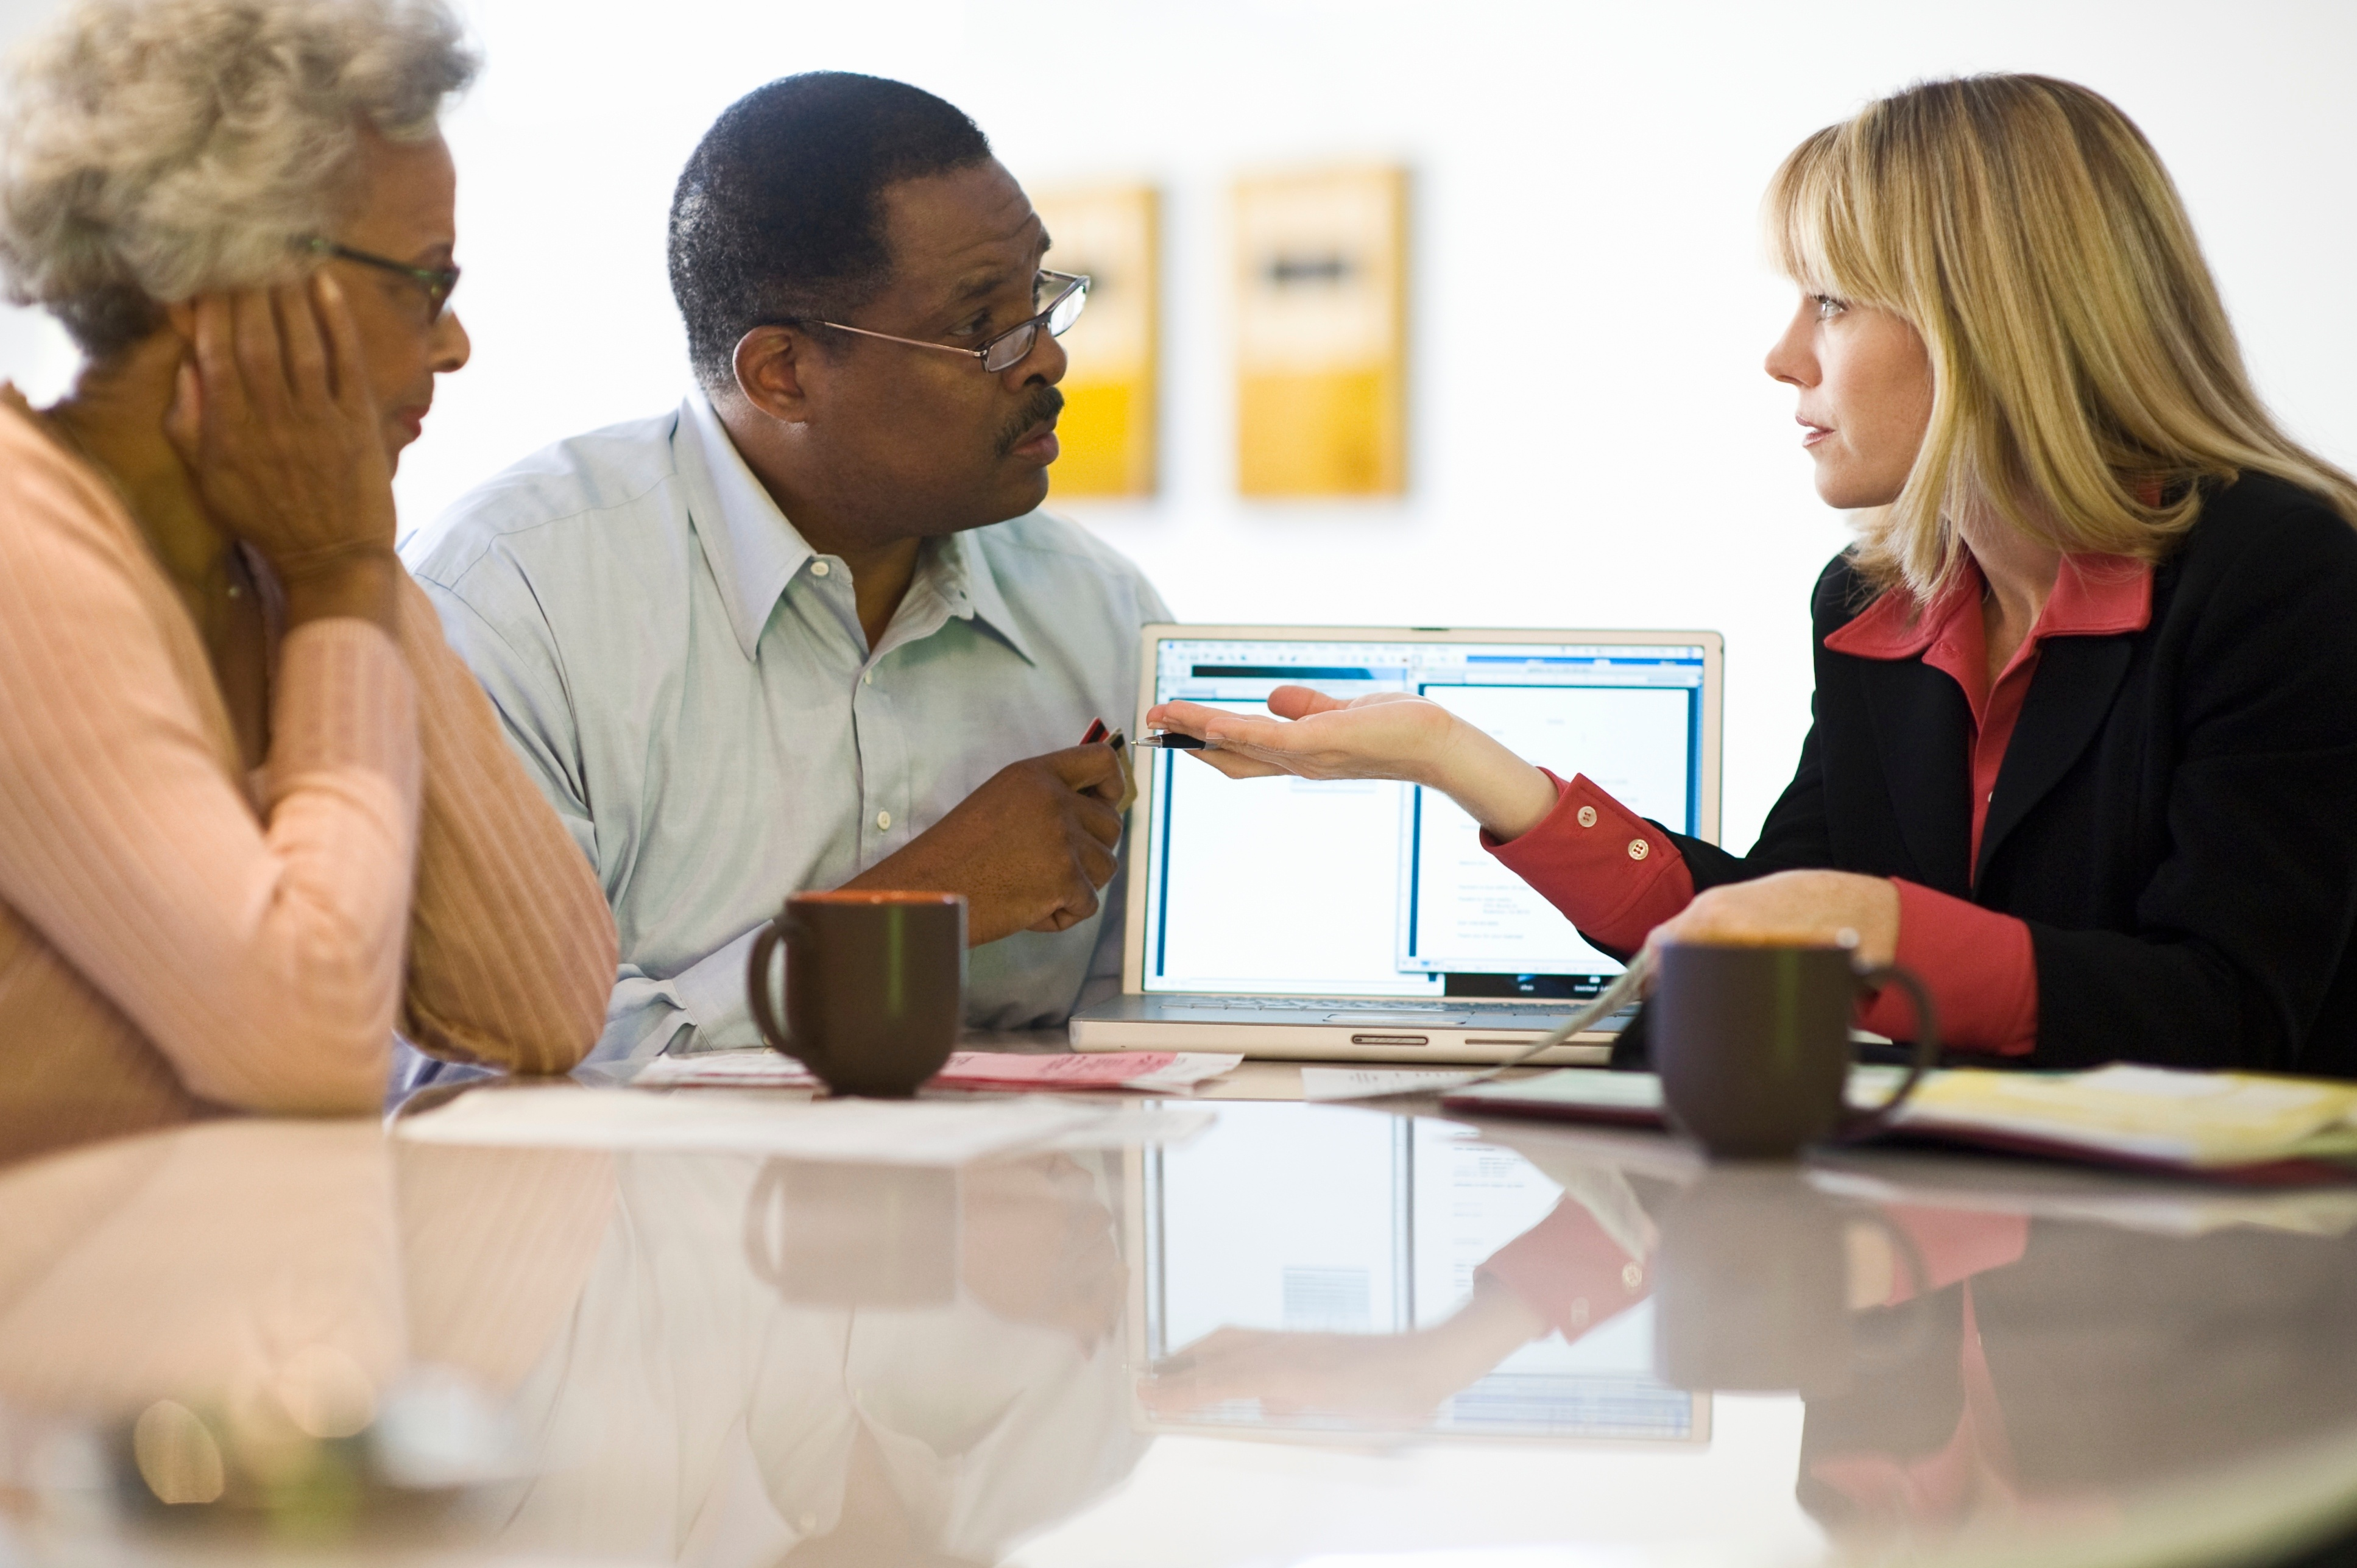 Improve Your Negotiation Skills With These 3 Tips